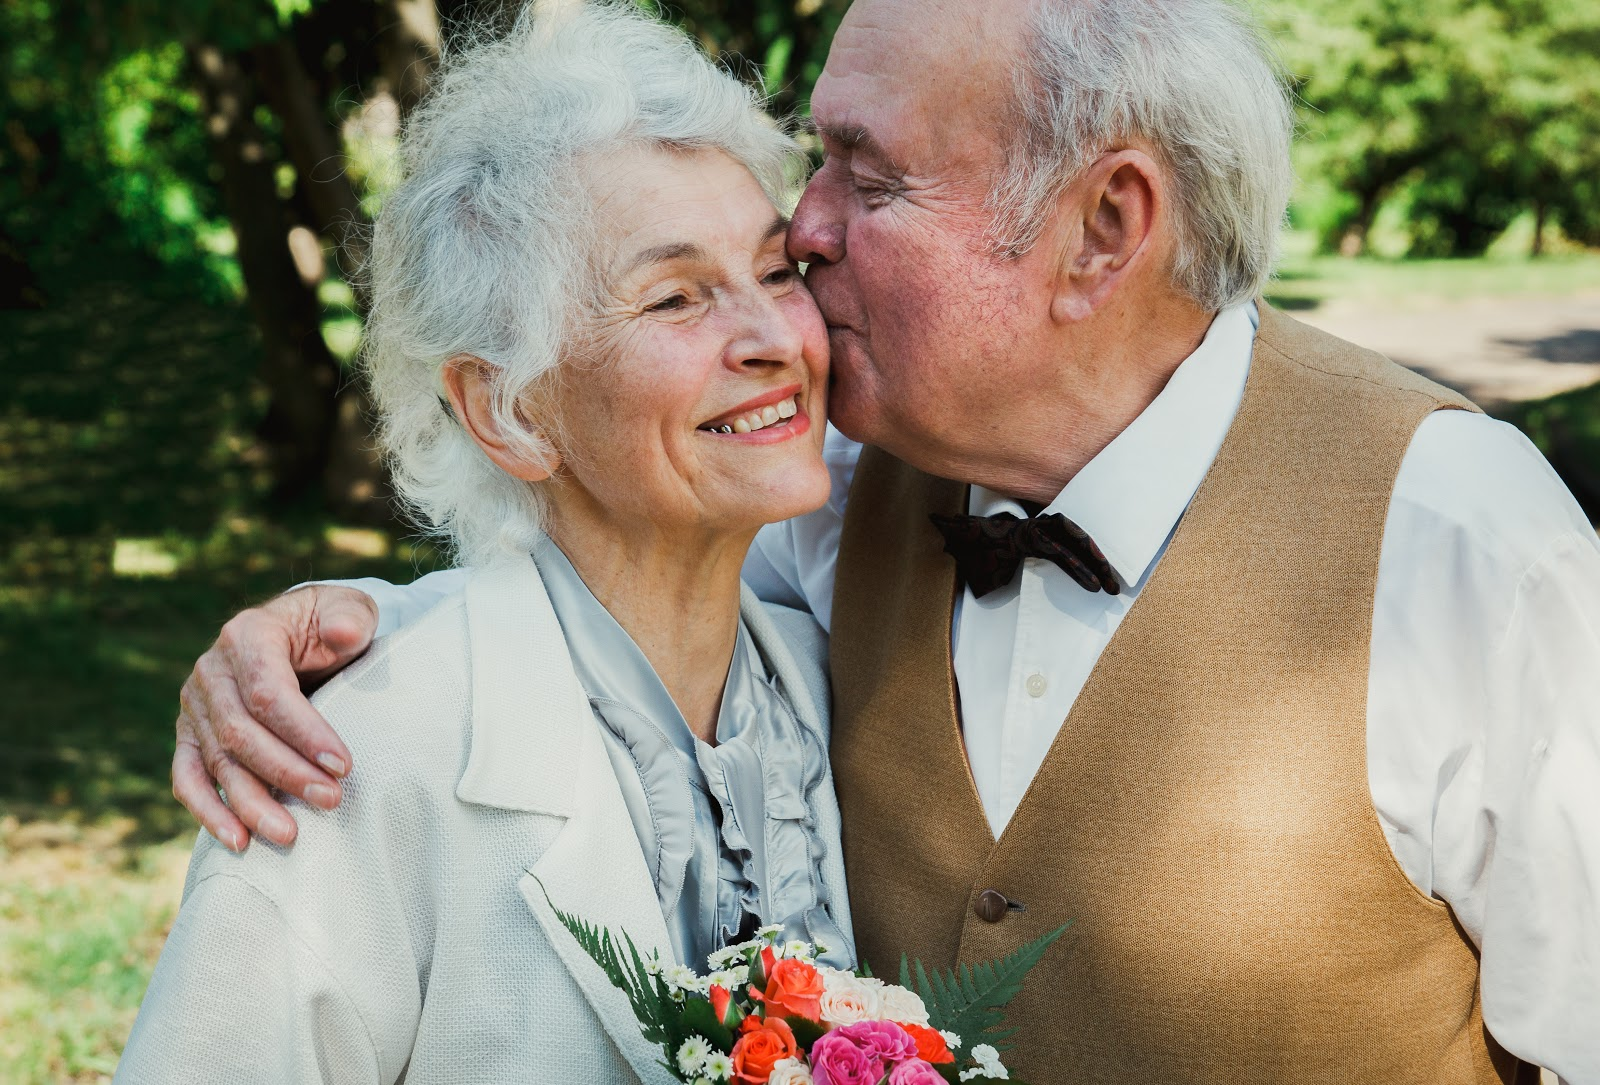 50th wedding anniversary invitations: Old couple kissing